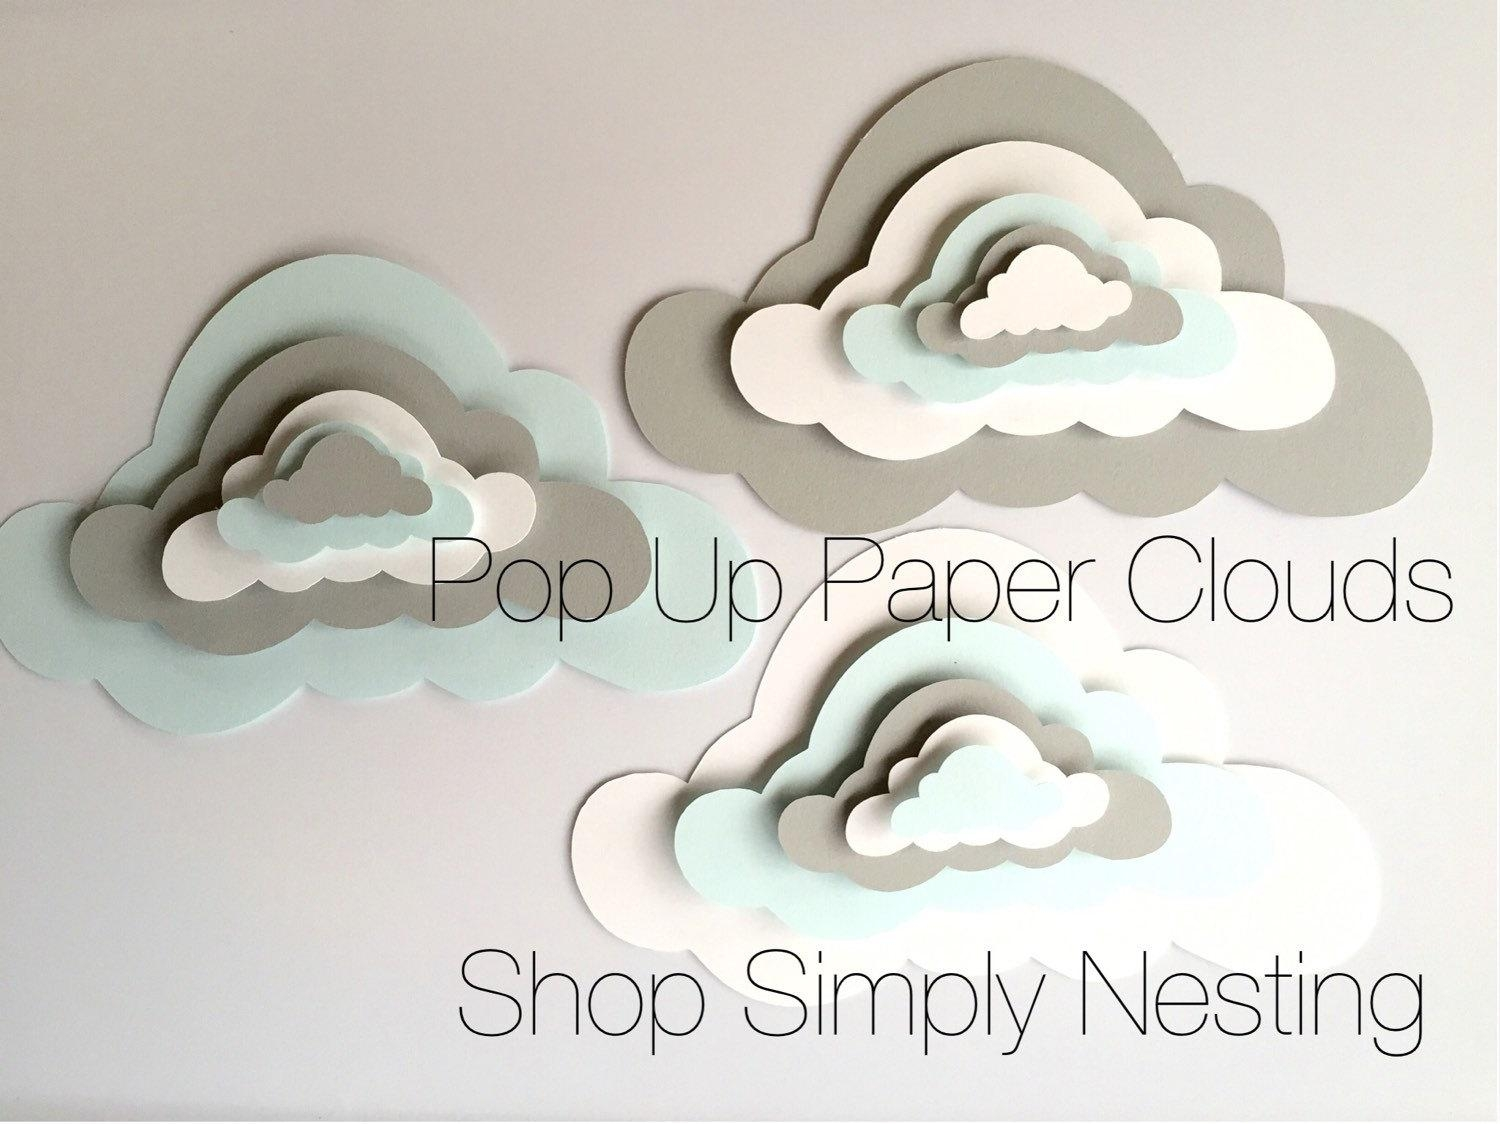 3 Pop Up Paper Clouds Cloud Wall Art 3 3D Paper Clouds Regarding 3D Clouds Out Of Paper Wall Art (Image 2 of 20)